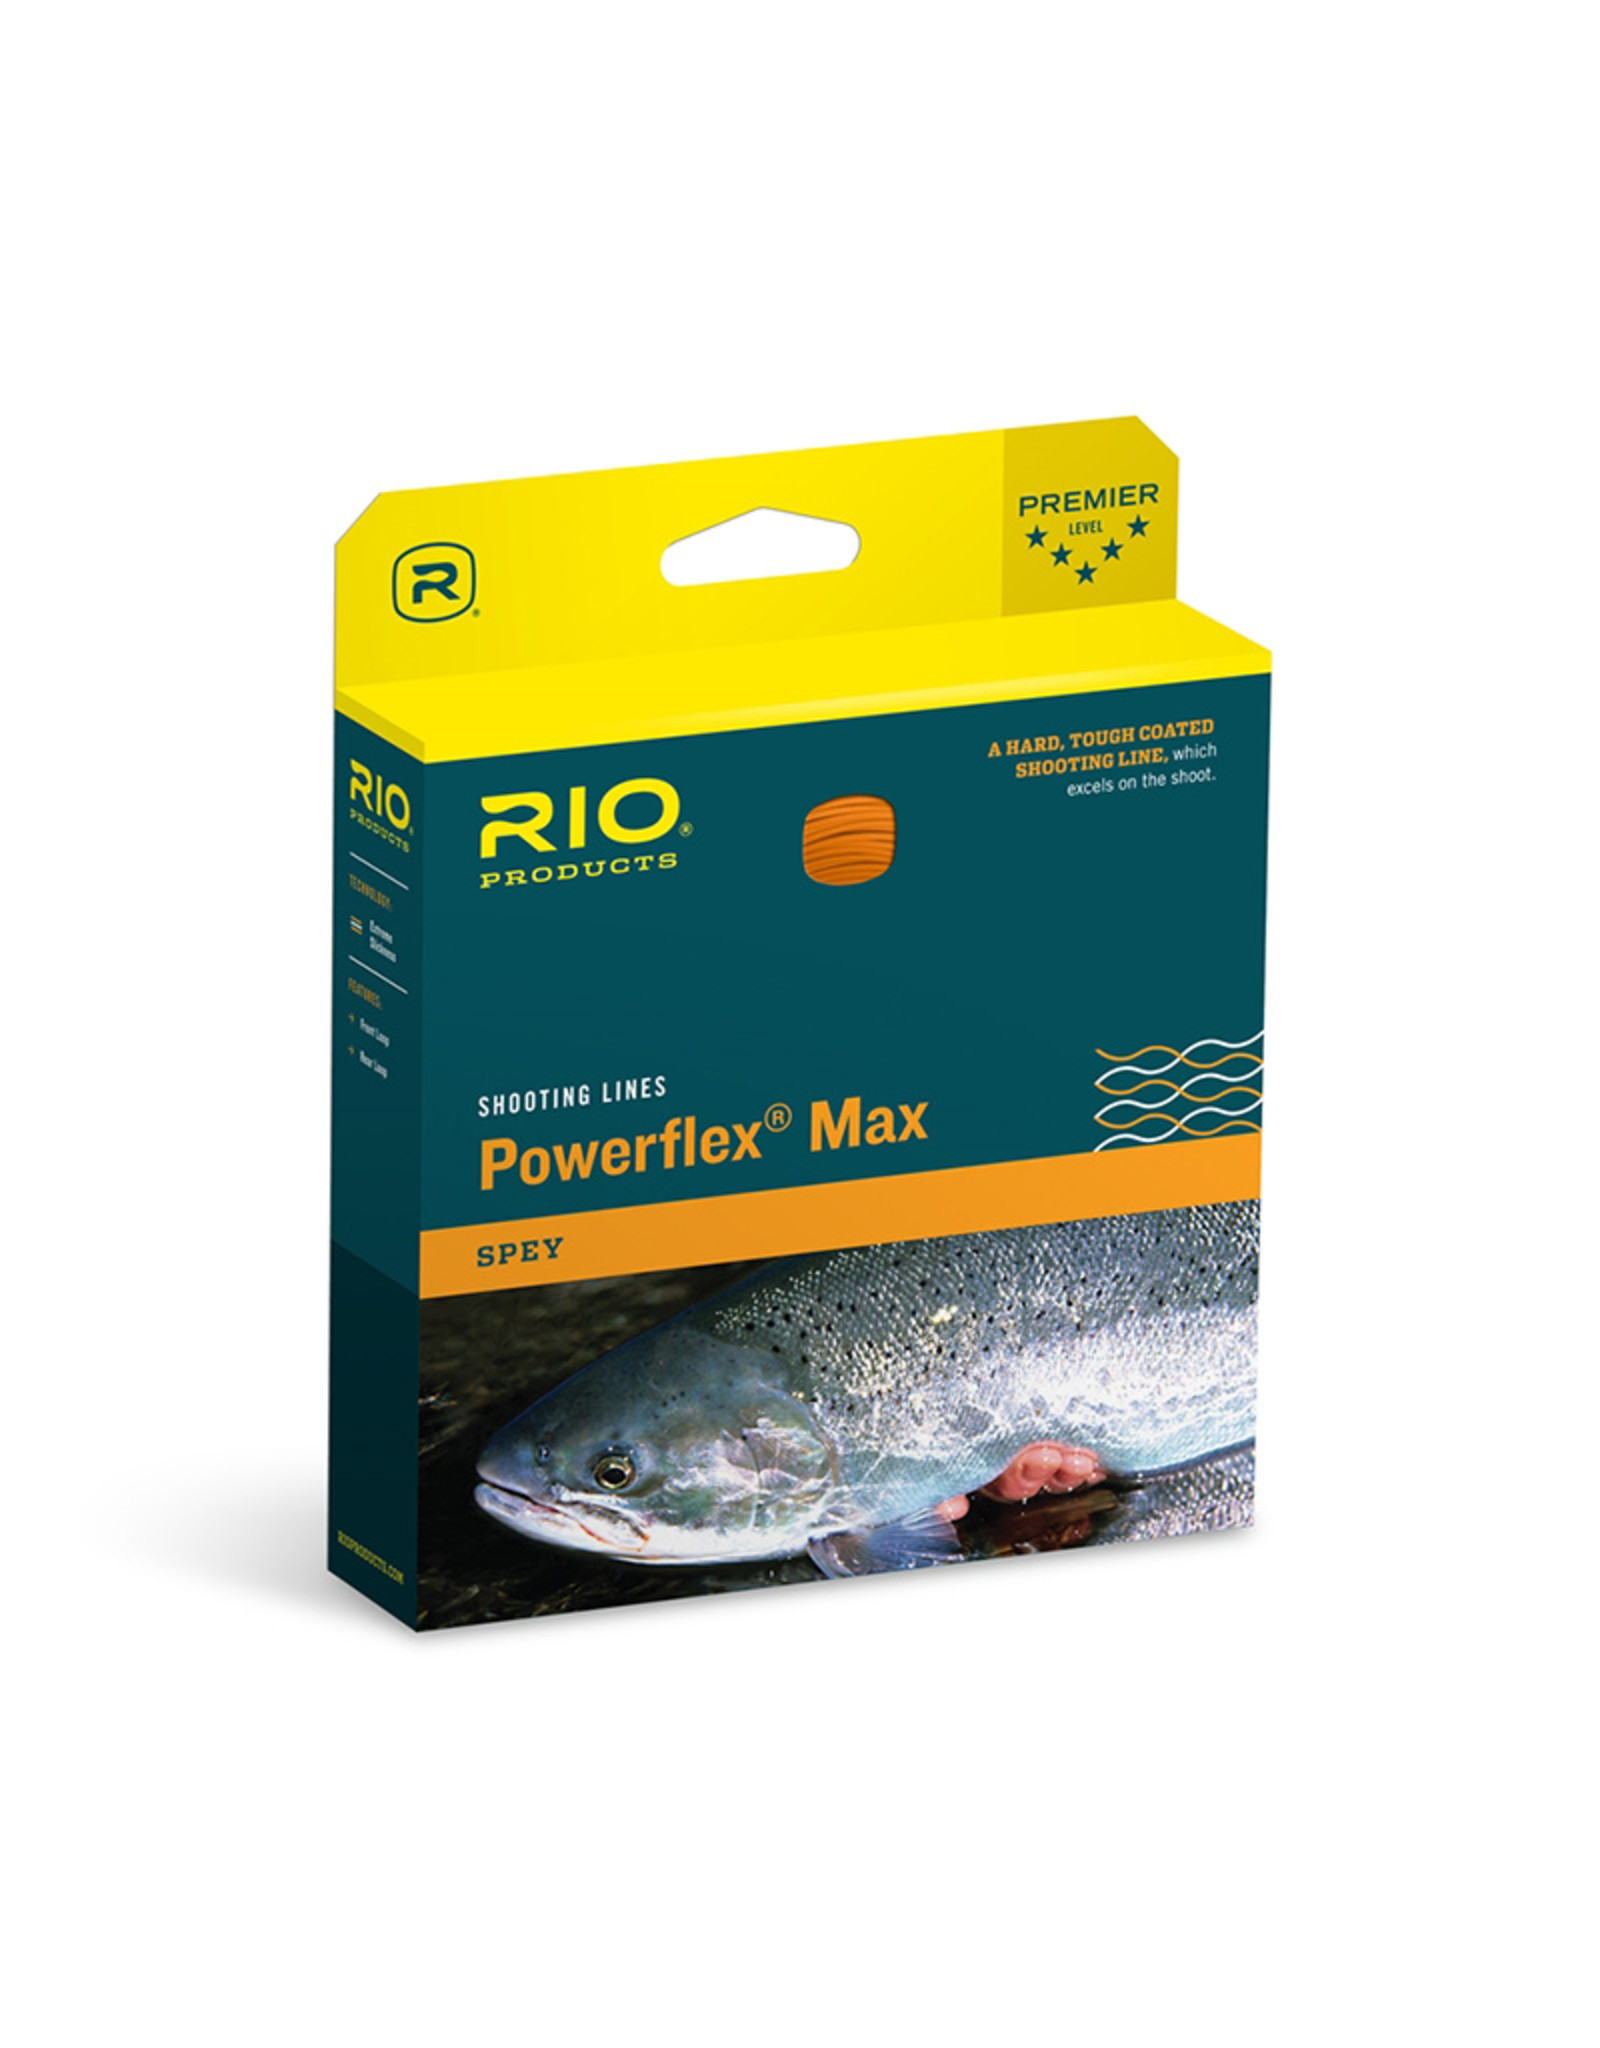 RIO Products Powerflex Max Shooting Line